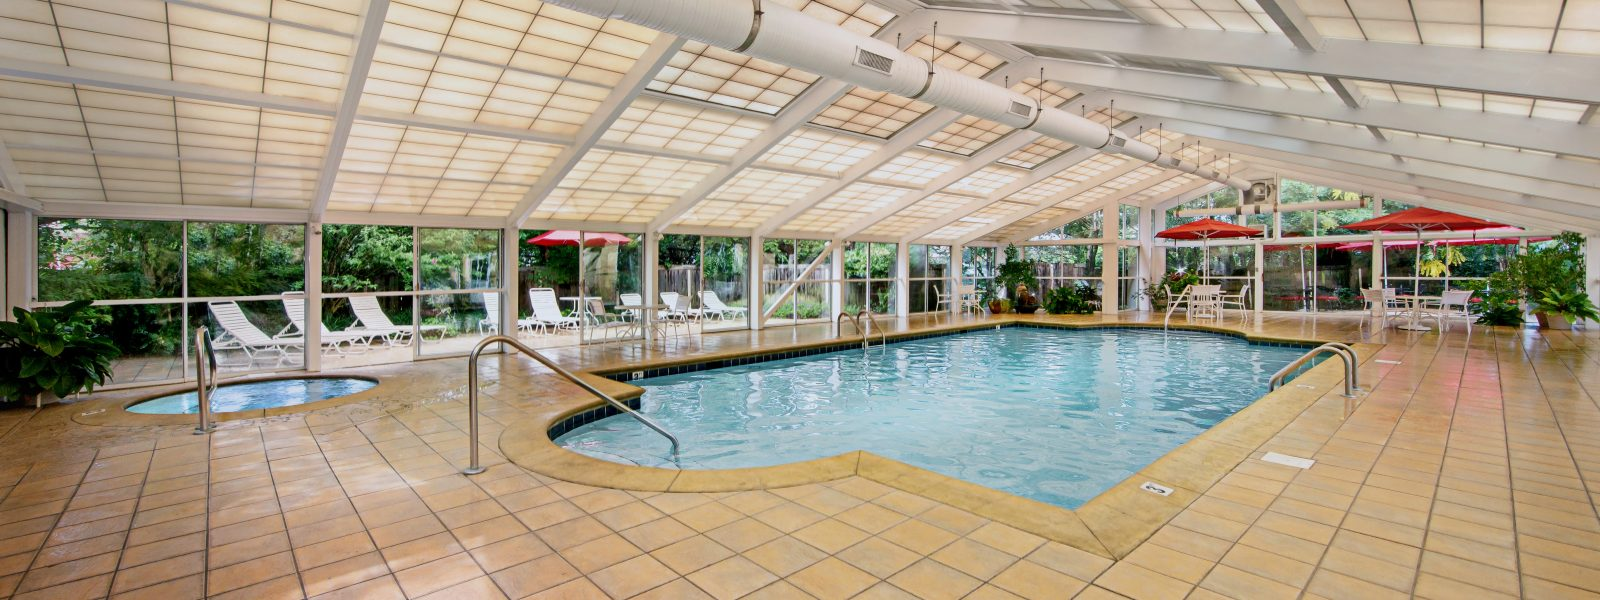 Pool. Families Vacationing In Pigeon Forge ...